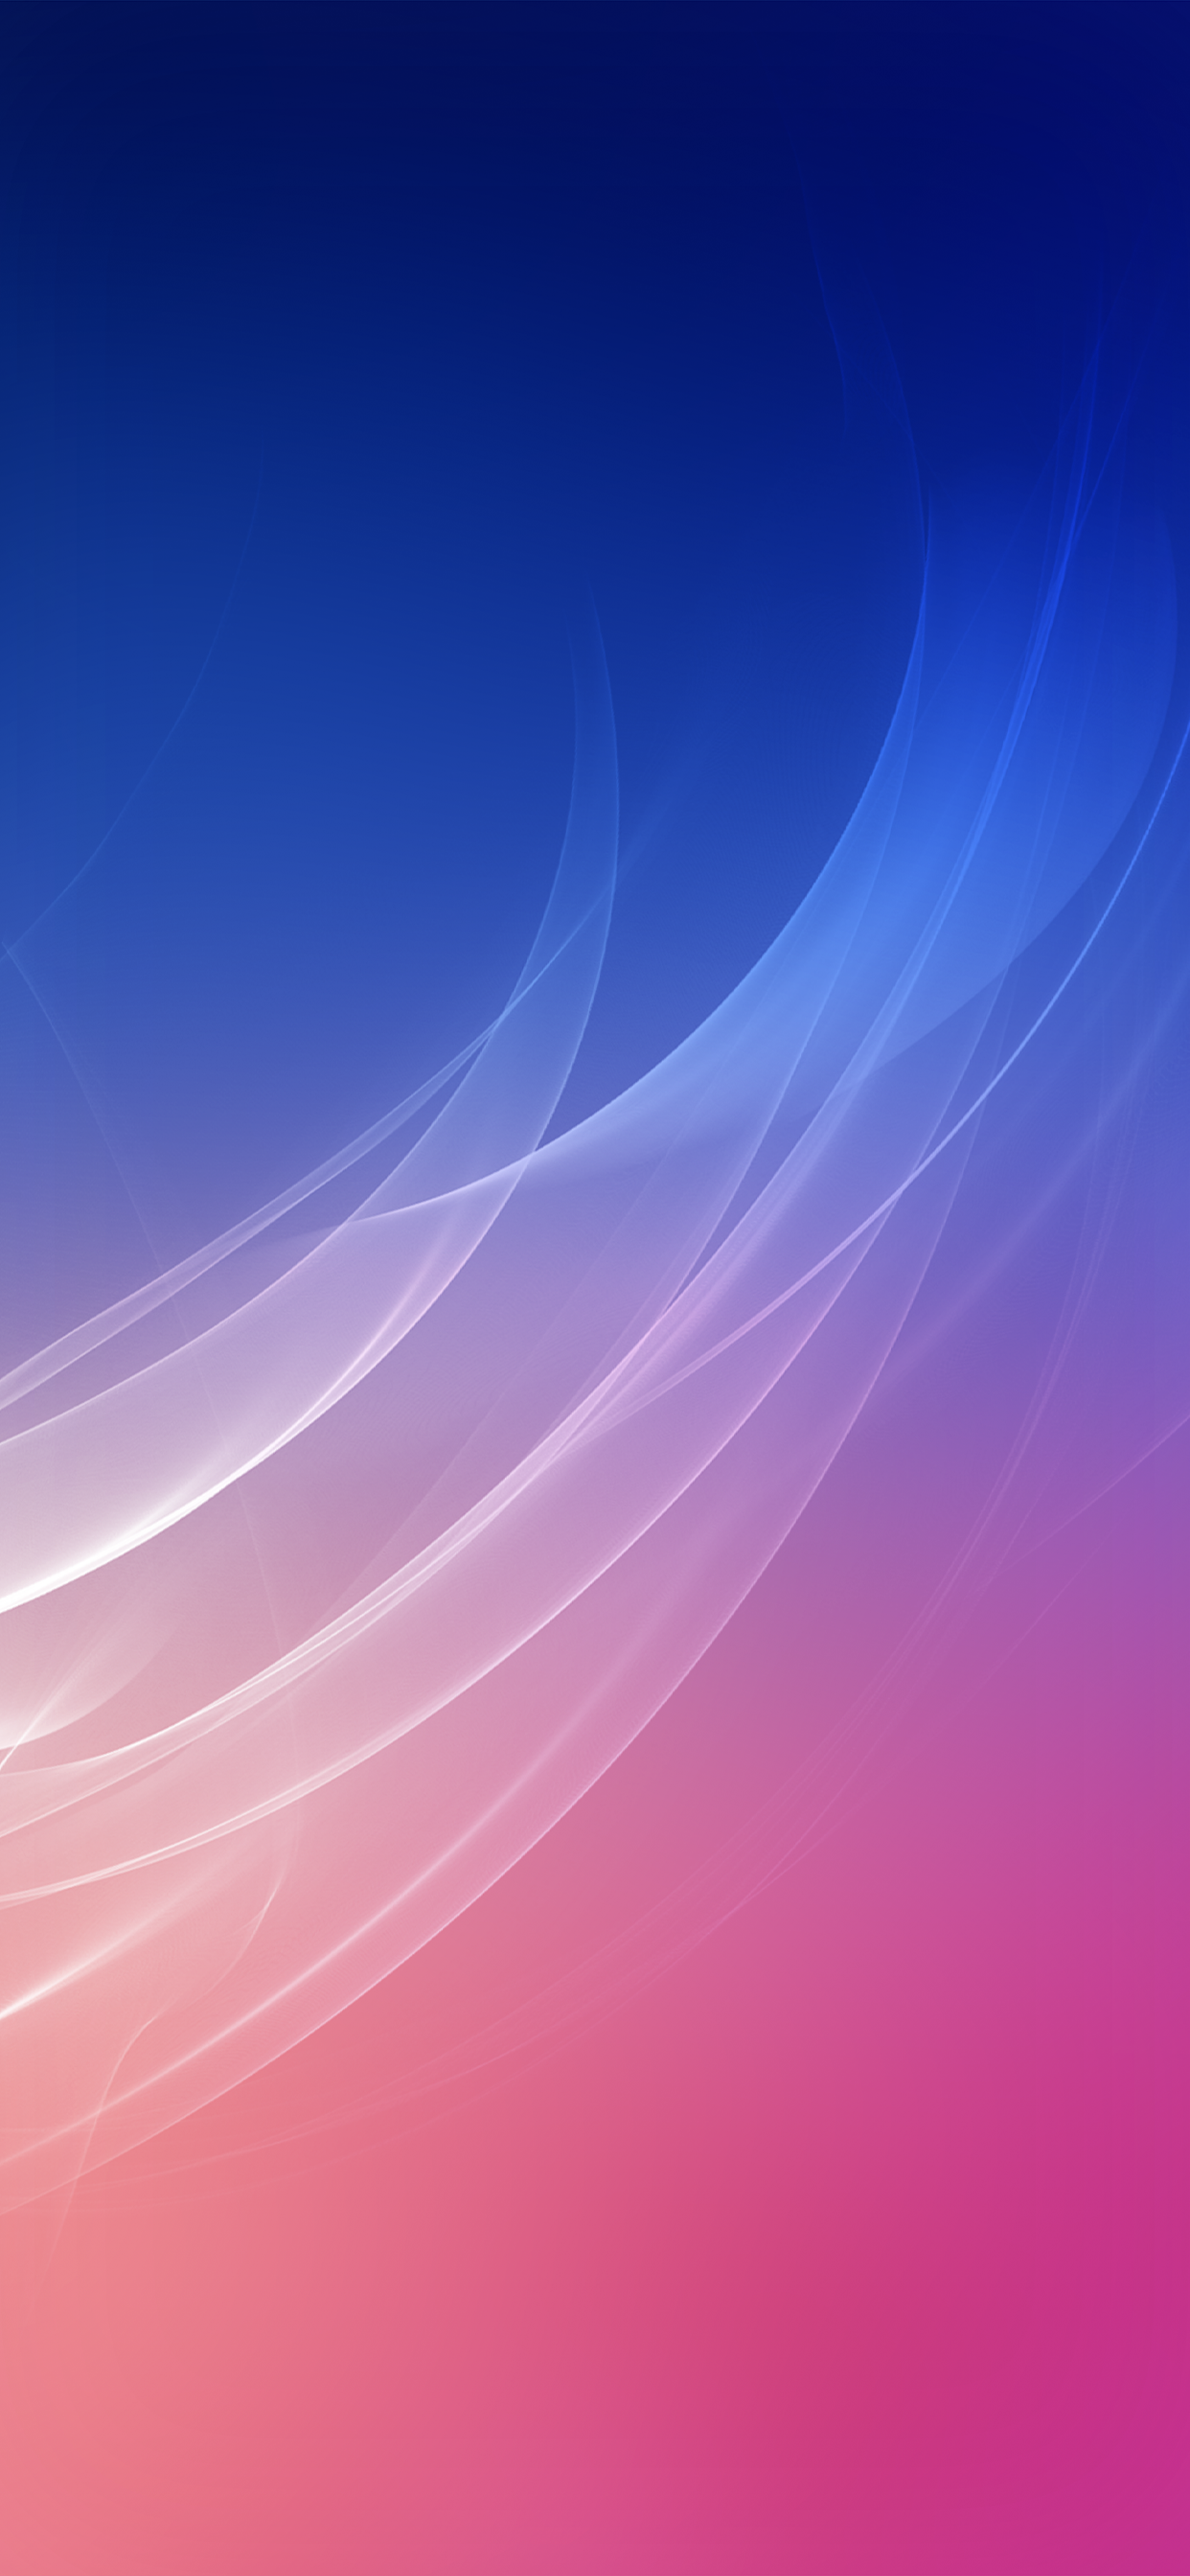 """Abstract """"Fusion"""" wallpapers for iPhone"""